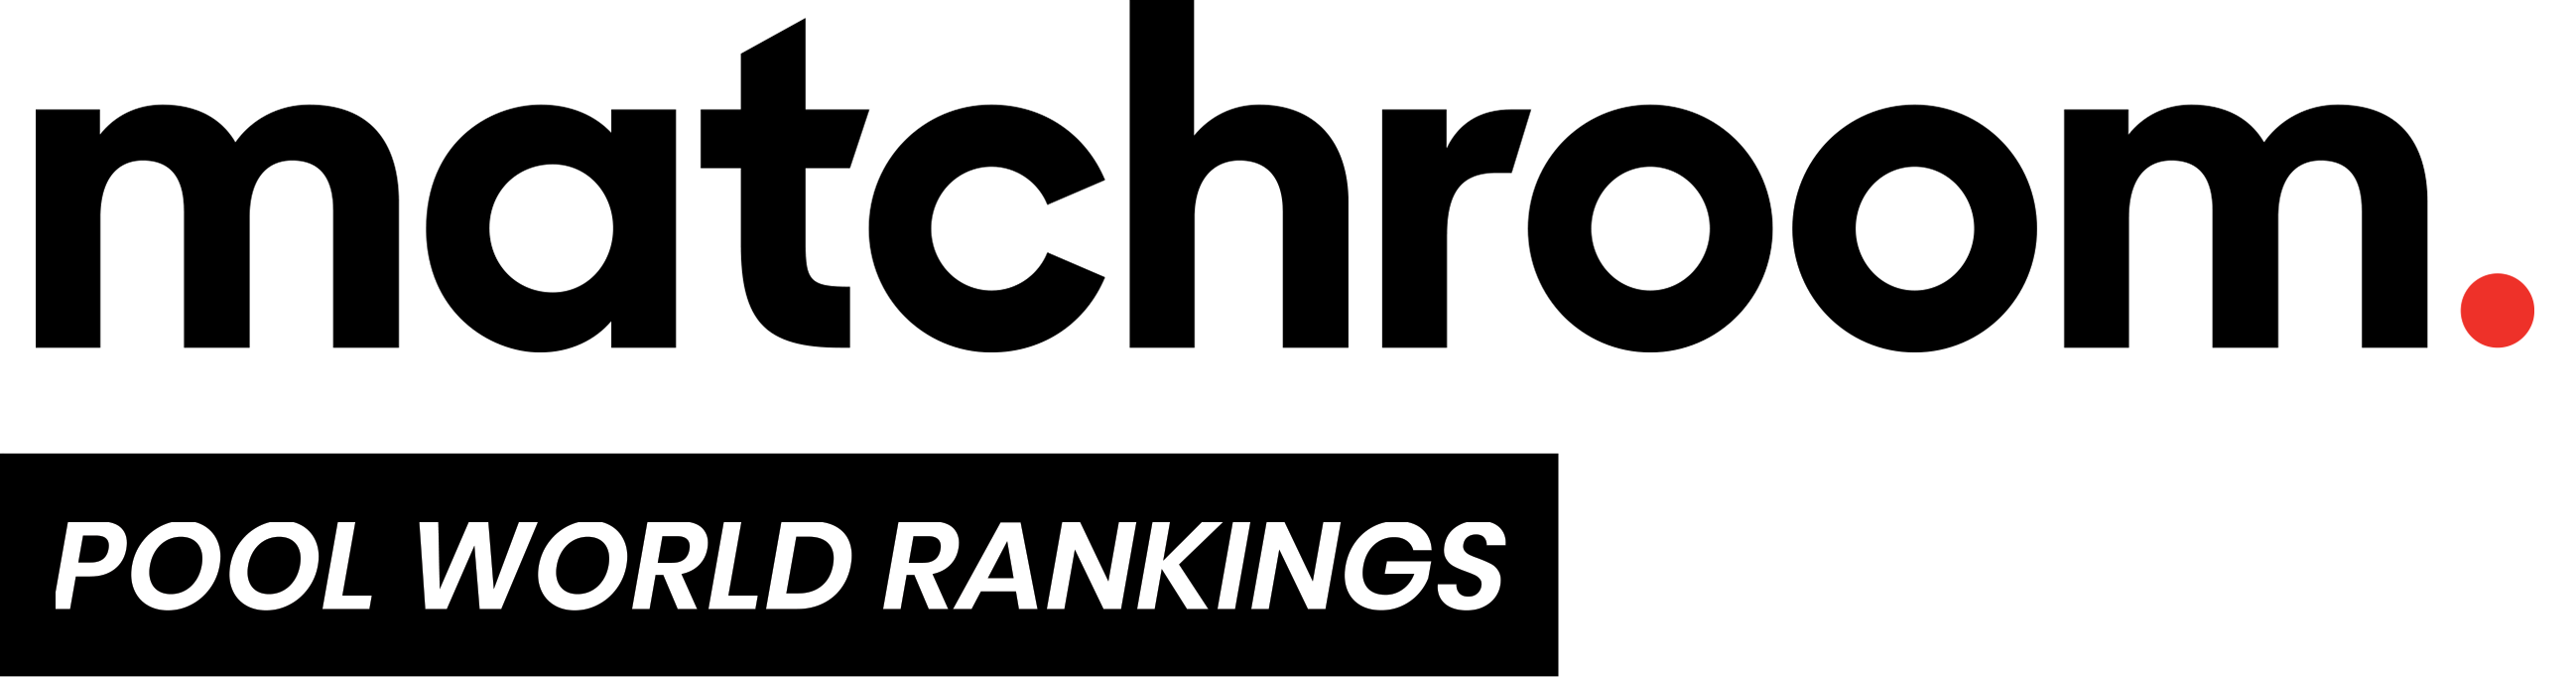 World Rankings